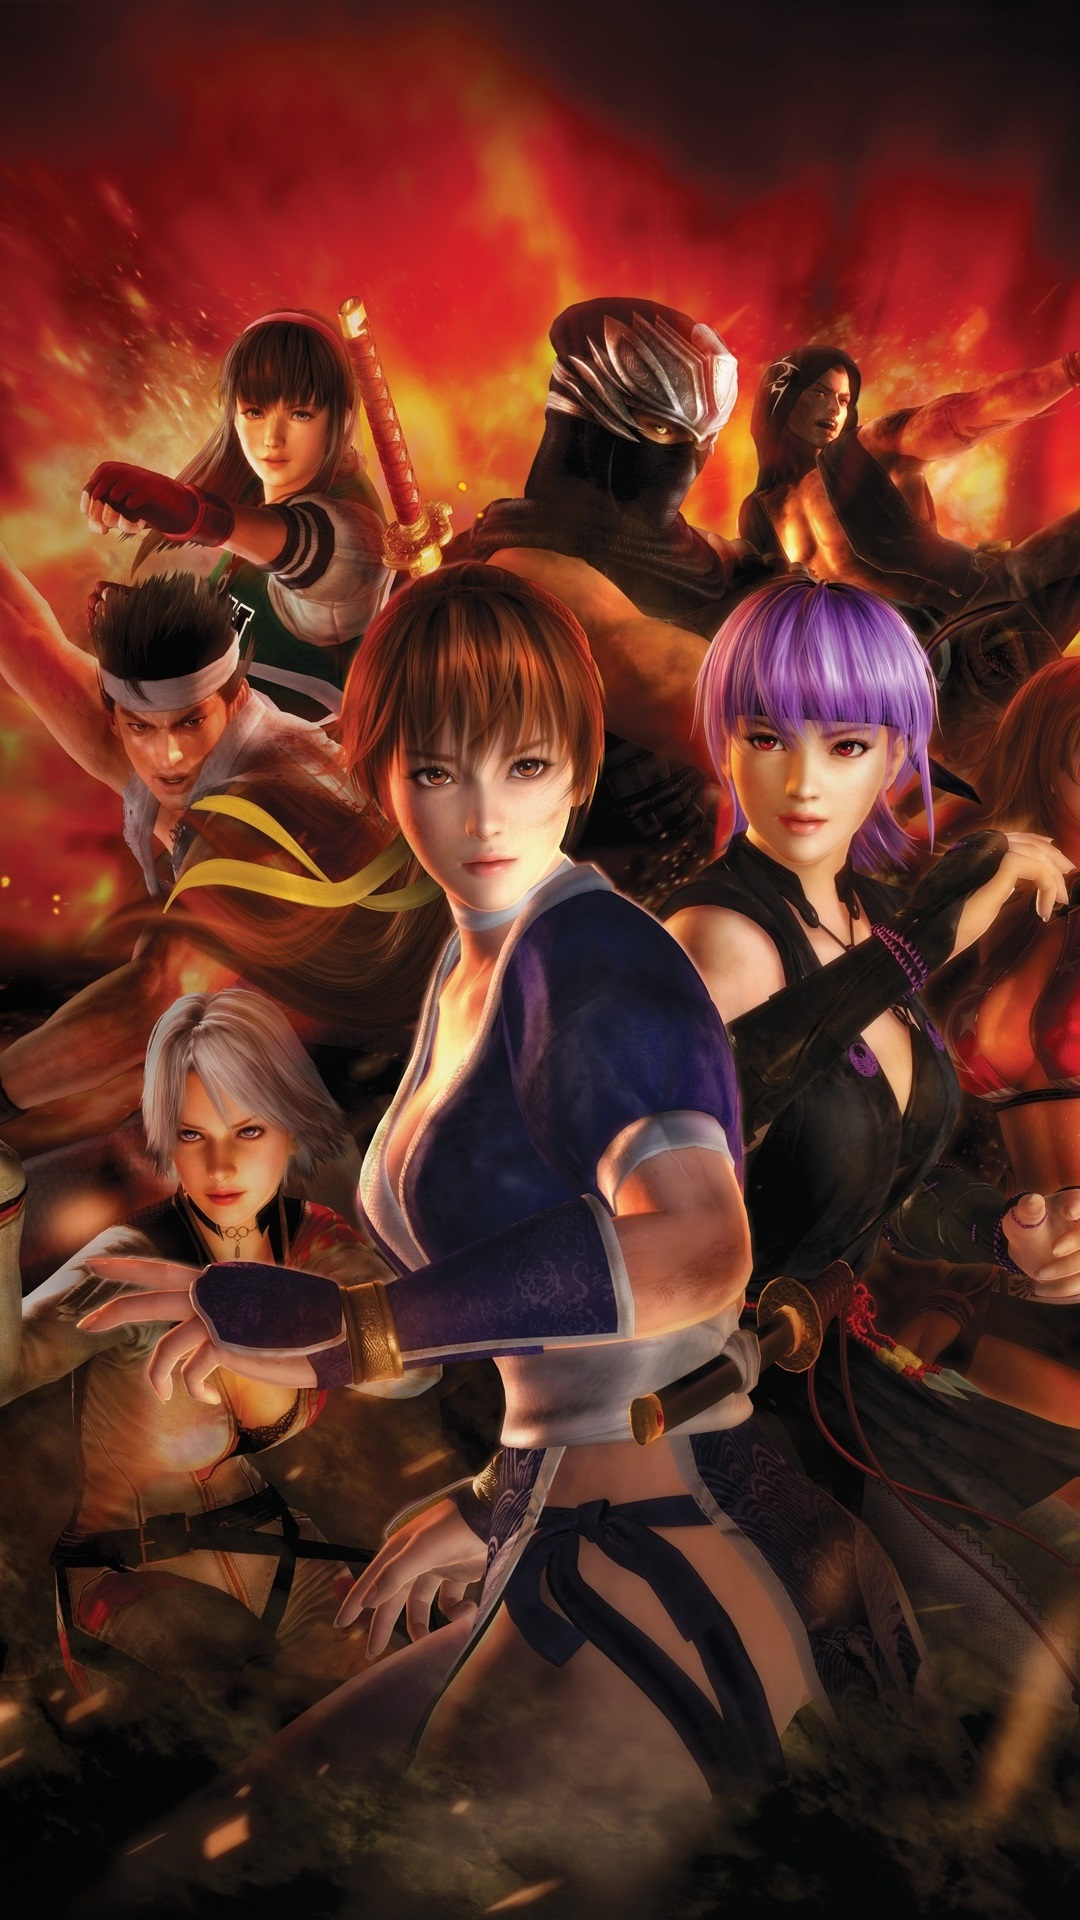 Dead Or Alive 5 Doa 5 Pc Game 1080x1920 Iphone 8 7 6 6s Plus